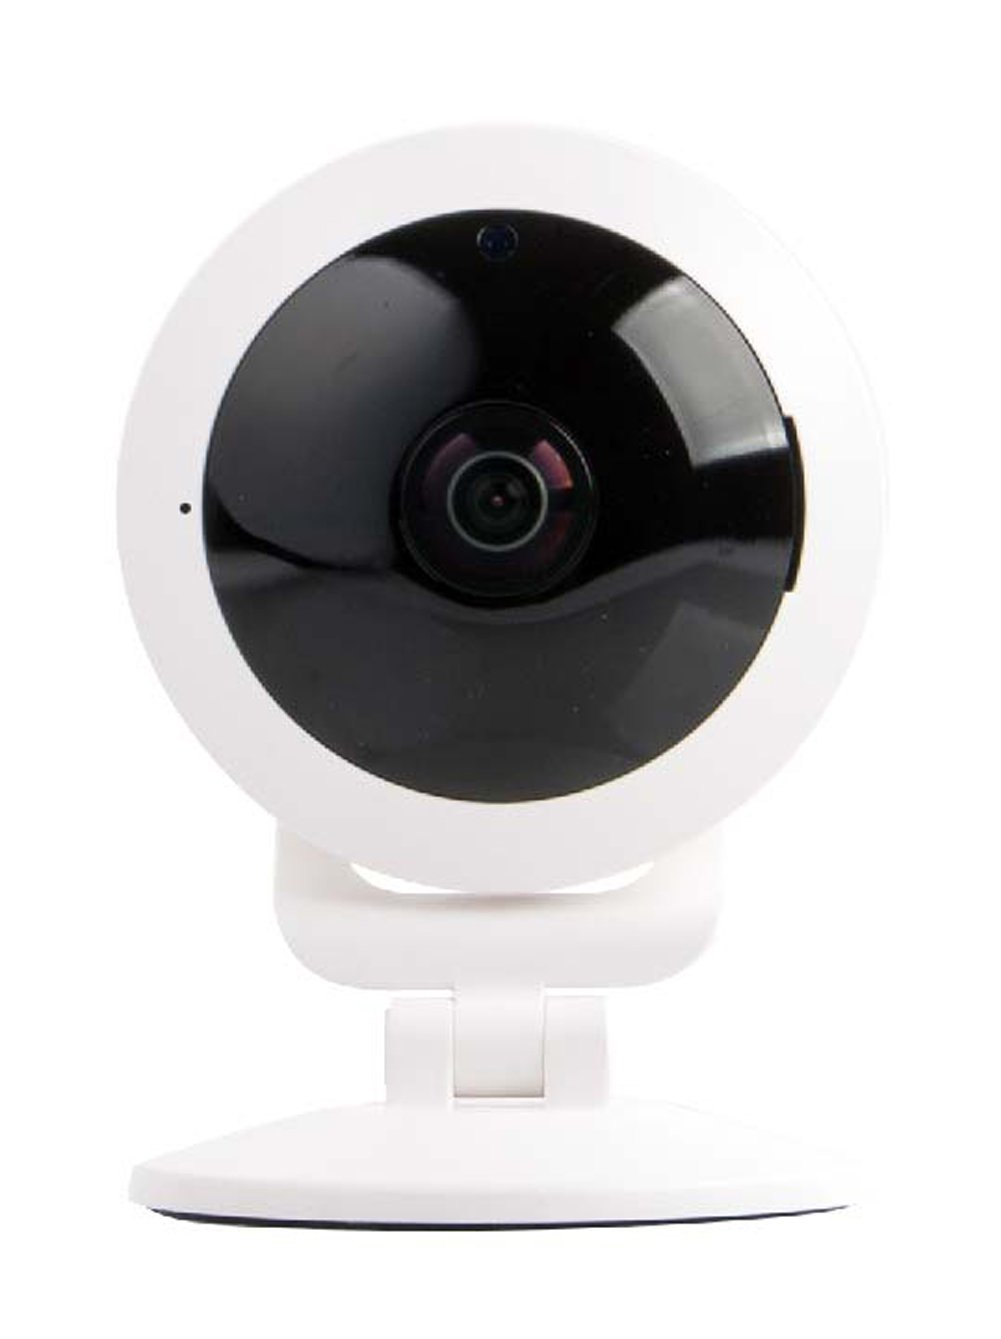 Vivitar IPC117 360 Wide Angle 1080p HD Wi-Fi Smart Home Camera with Motion Detection, Cloud Backup, Night Vision, Child and Pet Monitor, Two-Way Audio, iOS and Android App for Home or Office Use